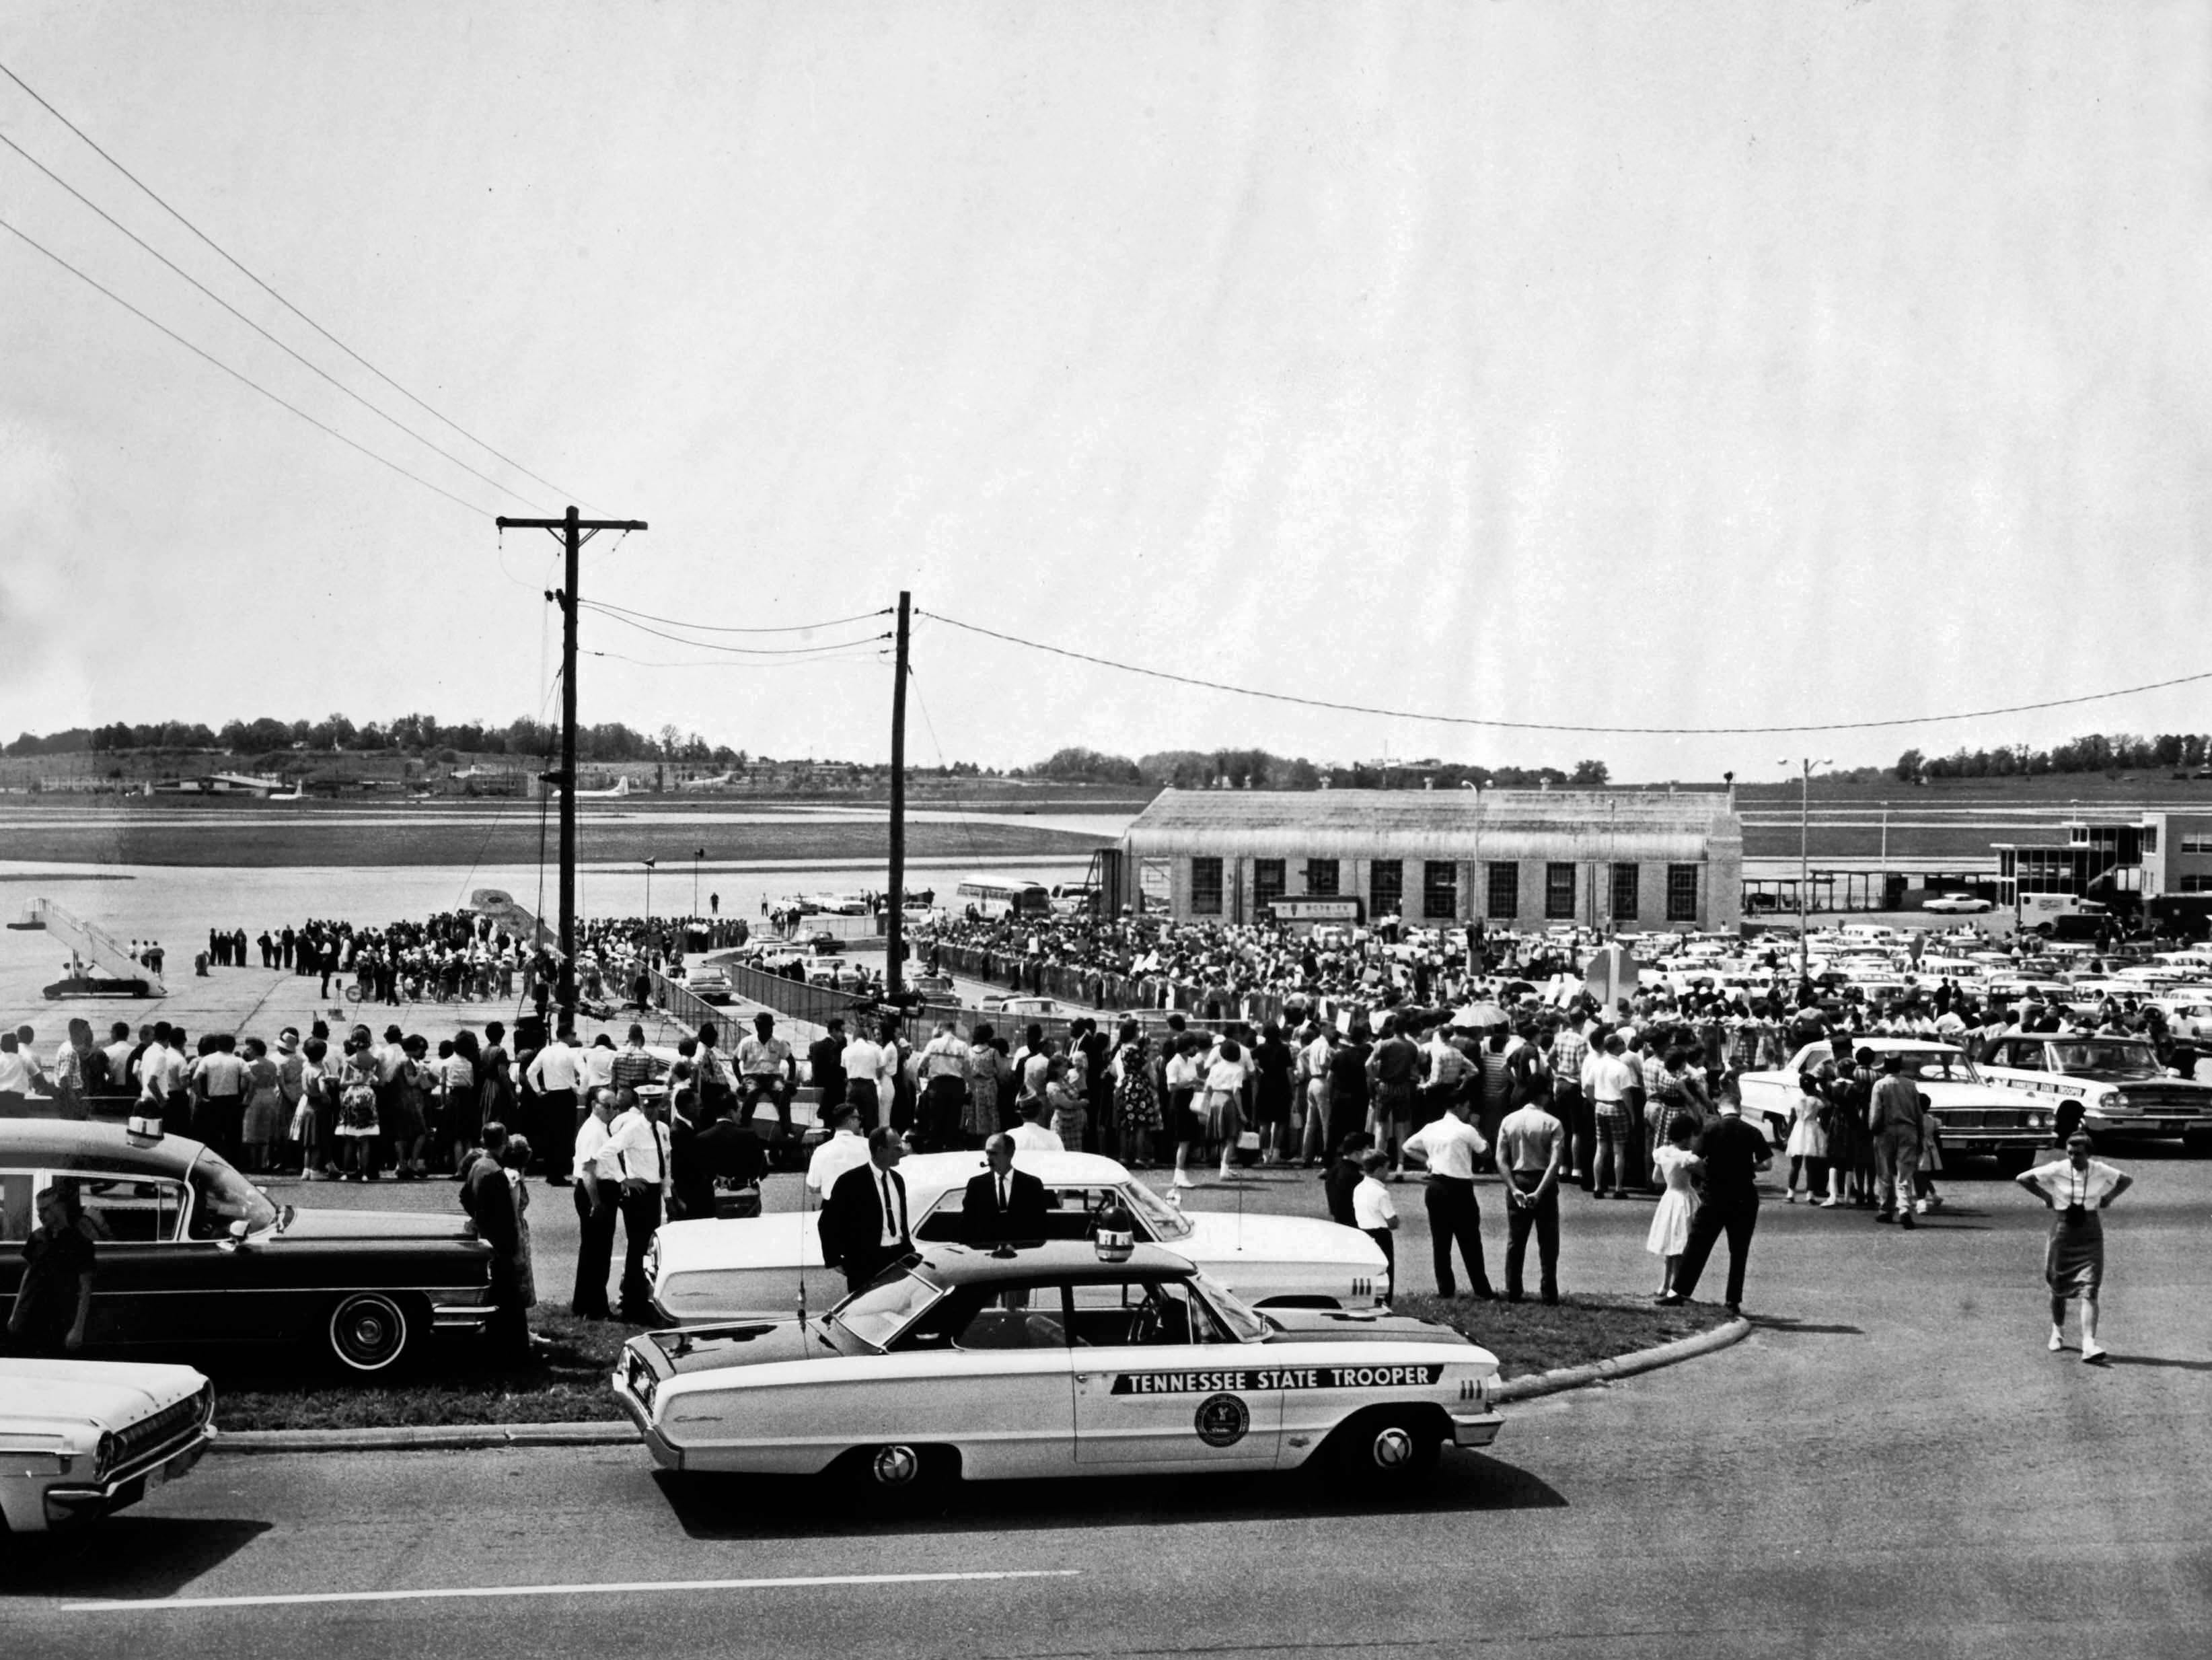 """In a May 7, 1964 photograph, a crowd gathers for the 3 p.m. arrival of President Lyndon B. Johnson at Municipal Airport. A News-Sentinel reporter interviewed Tony Hollingsworth, 17, who skipped school in Chattanooga to see the President. """"He walked over to me just like he knew who I was .... He had his hand out and people were just grabbing at it. He shook mine,"""" said Hollingsworth."""